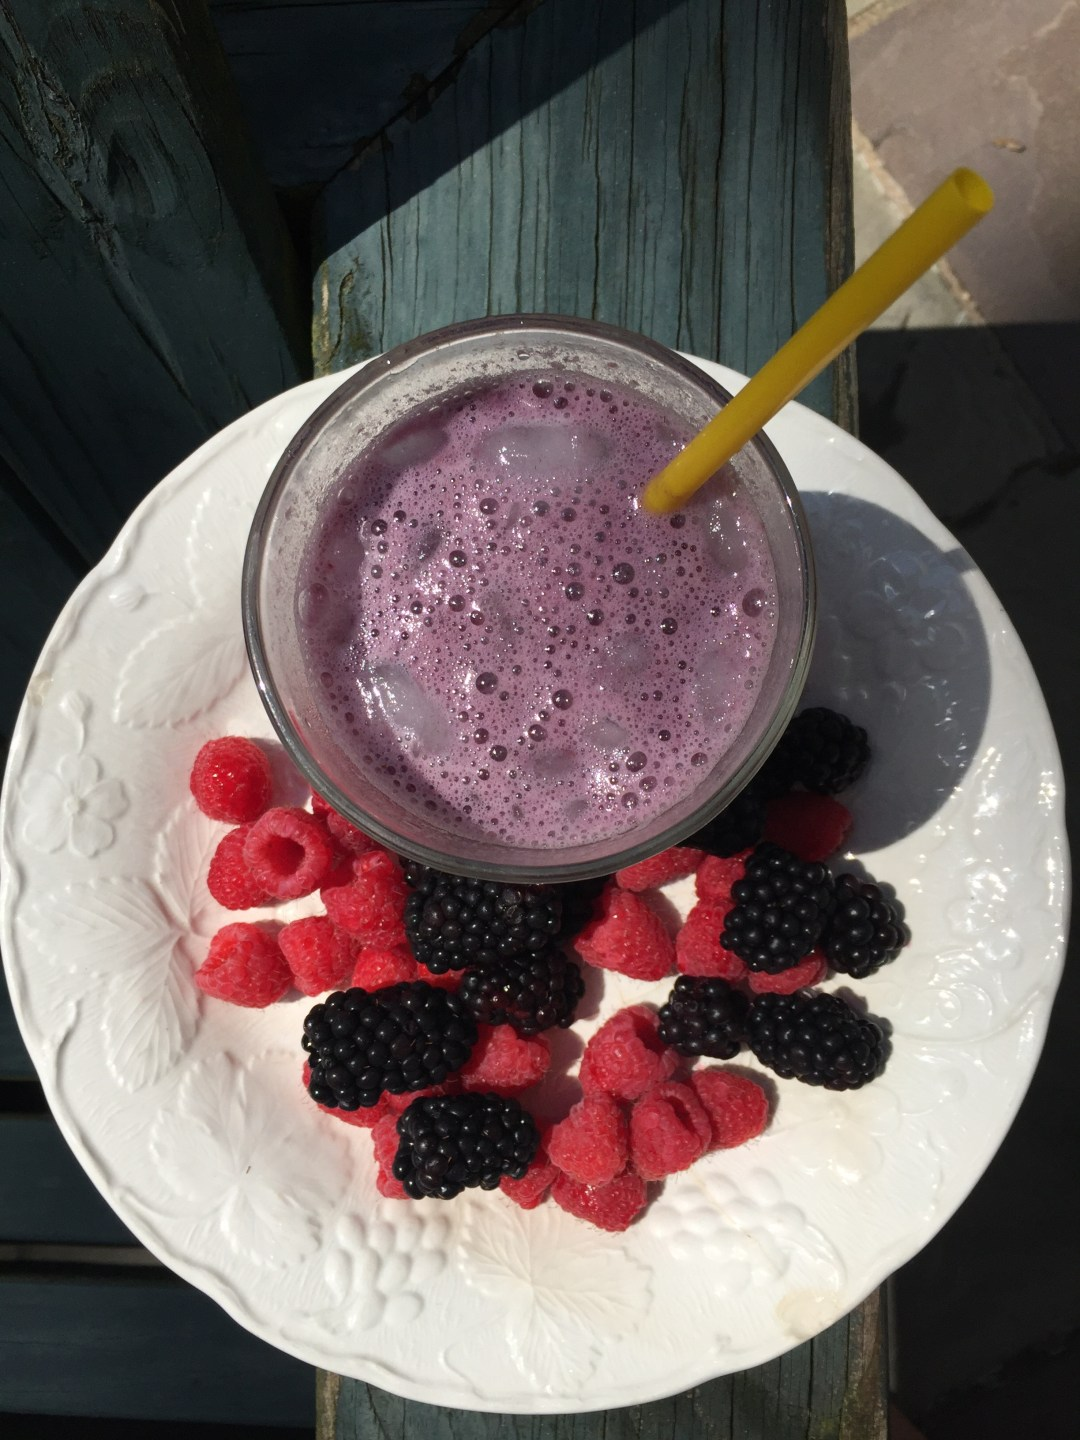 Berries and coconut milk make a hydrating smoothie.